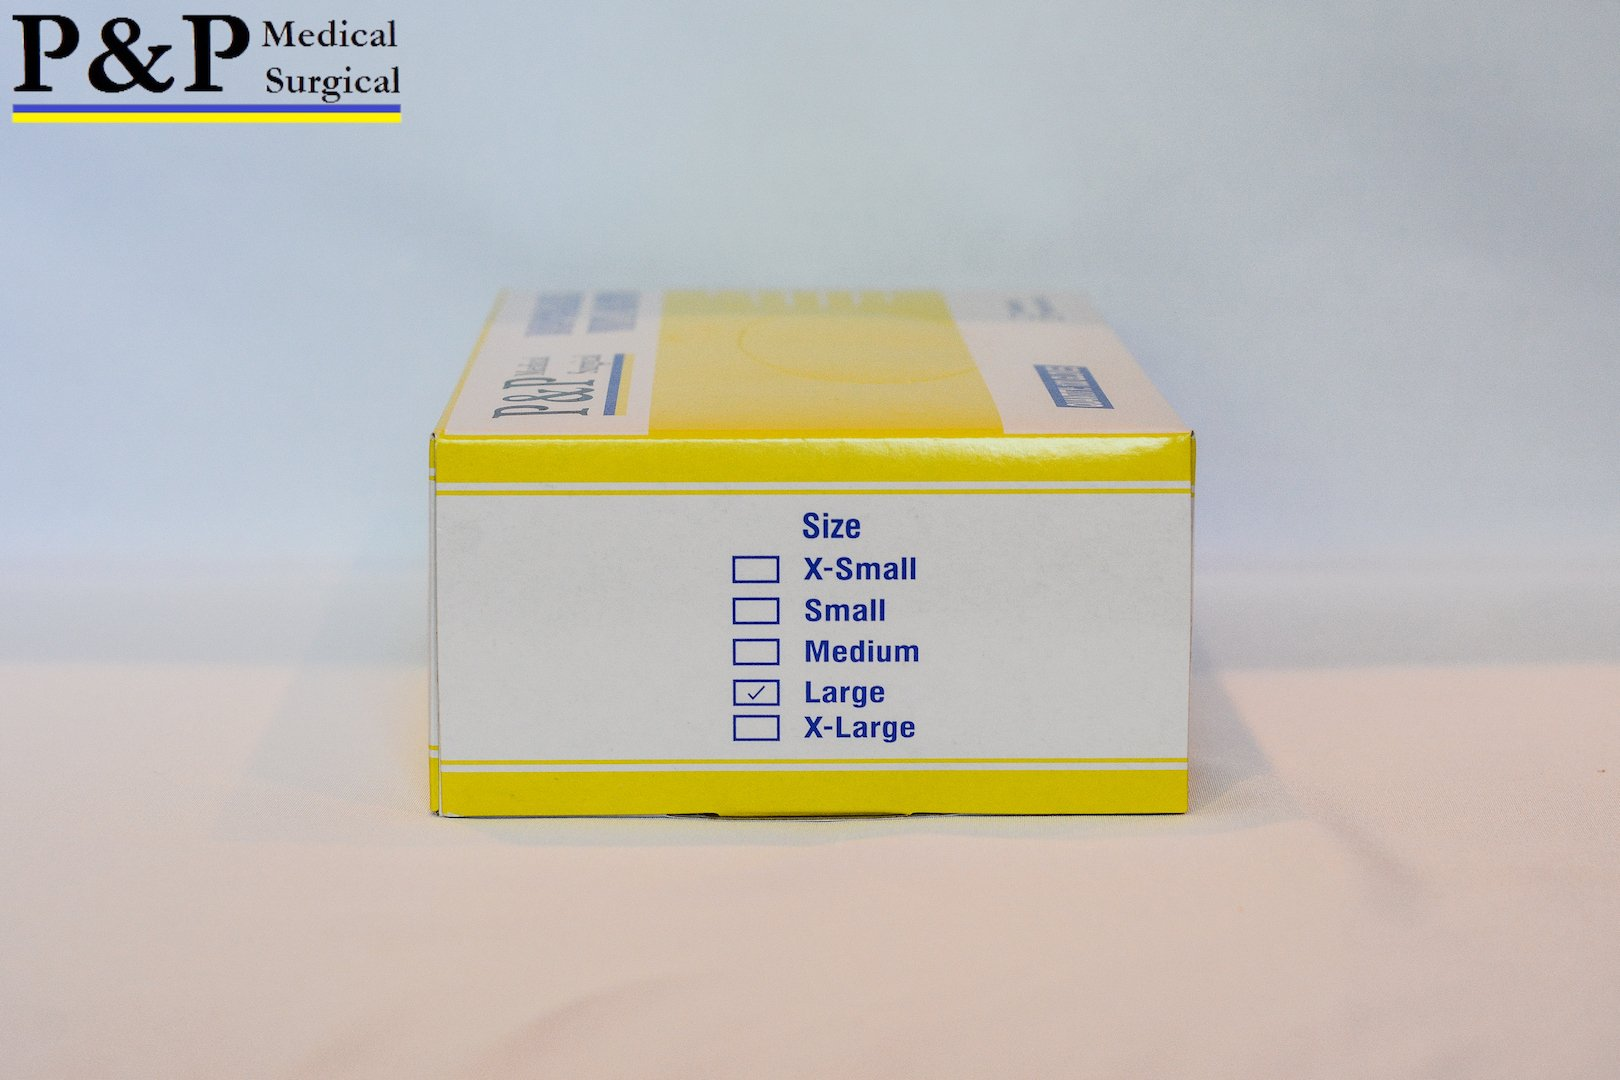 Vinyl Gloves Disposable Medical Exam Powder Latex Free (1 Case= 1000 gloves) X-Large by P&P Medical Surgical (Image #6)